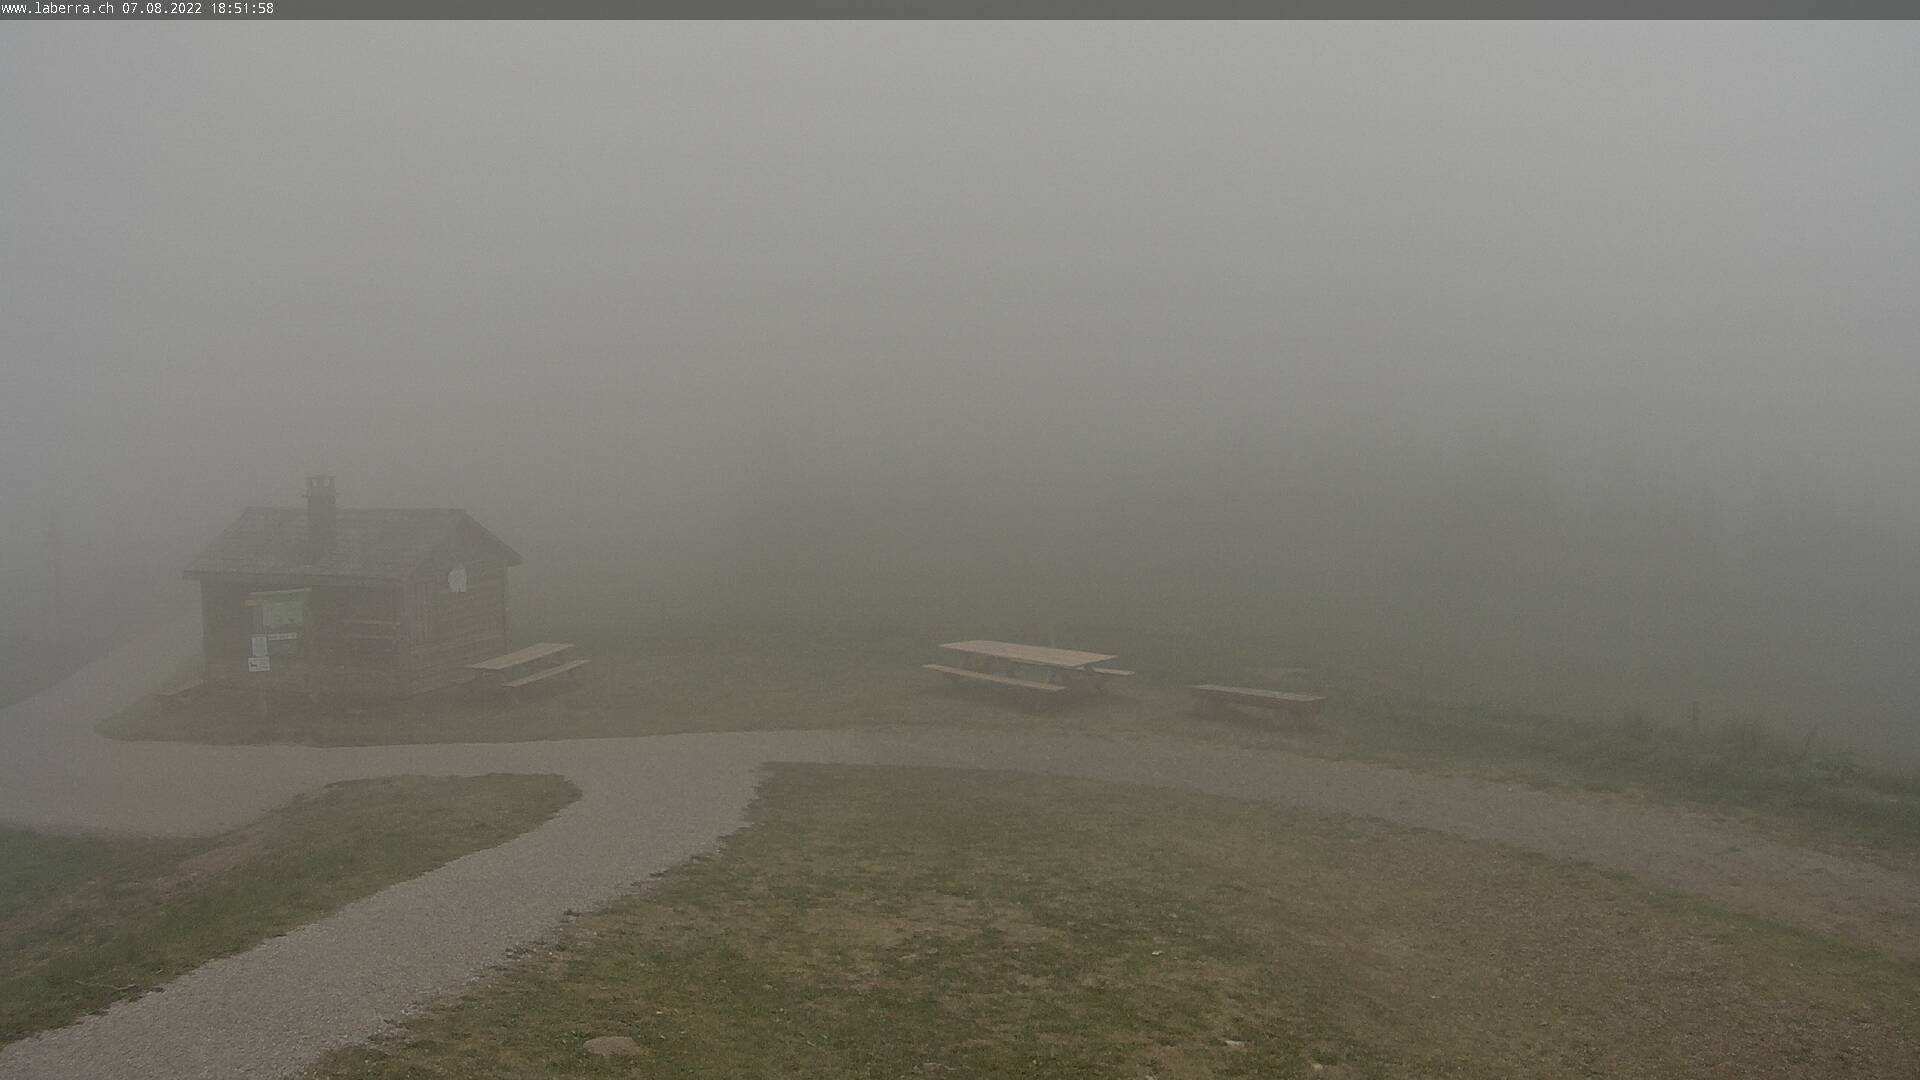 Webcam La Berra, Alt. 1'635 m.